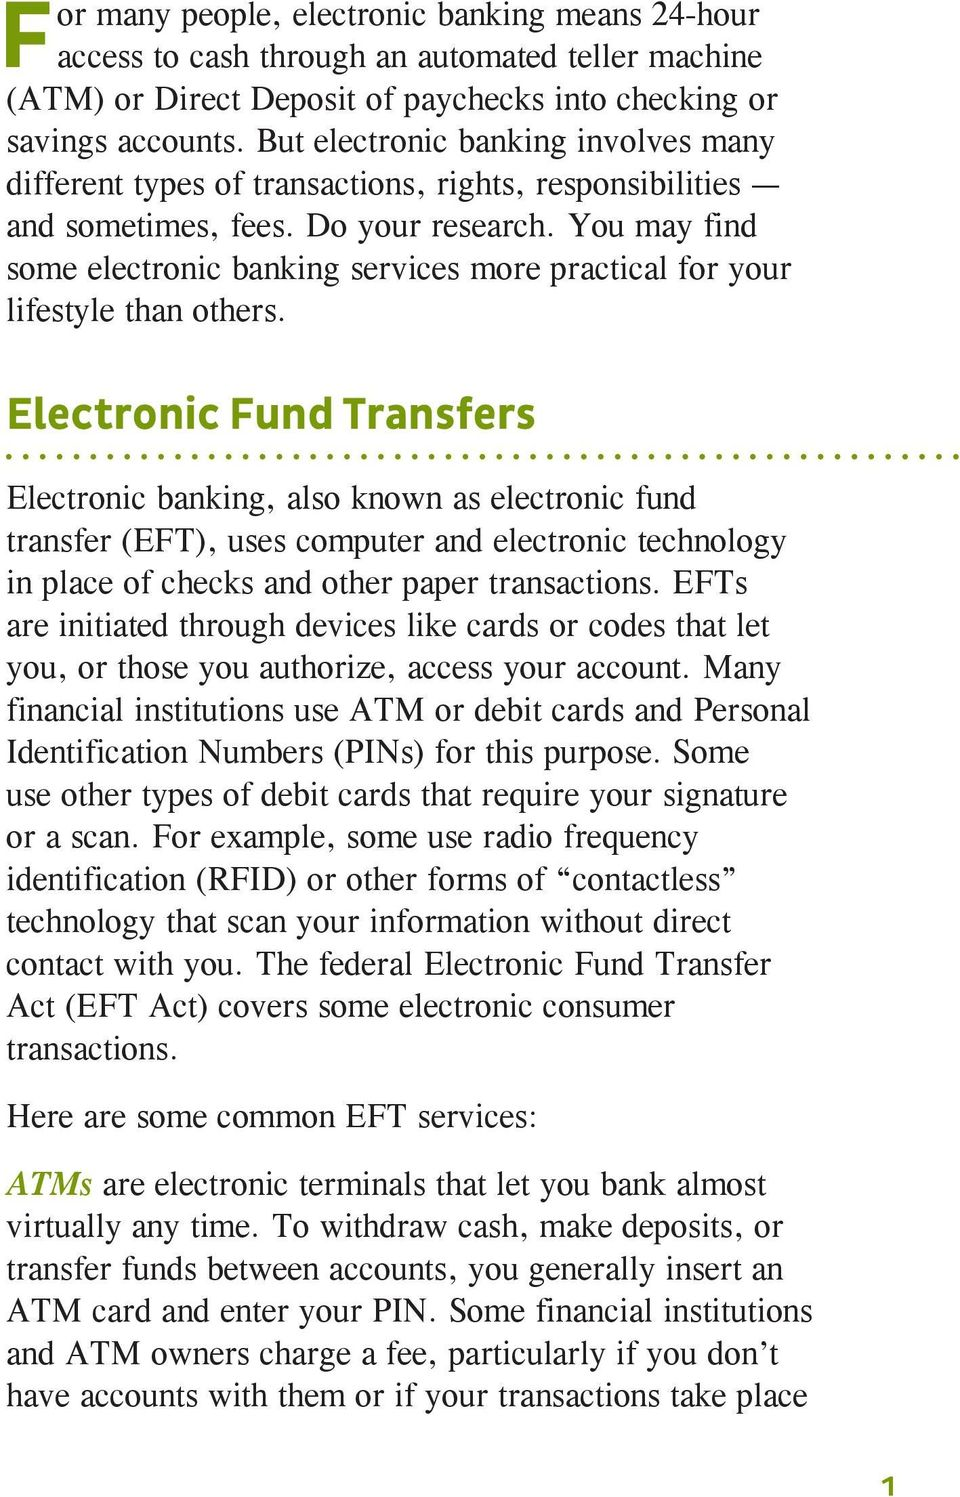 You may find some electronic banking services more practical for your lifestyle than others.